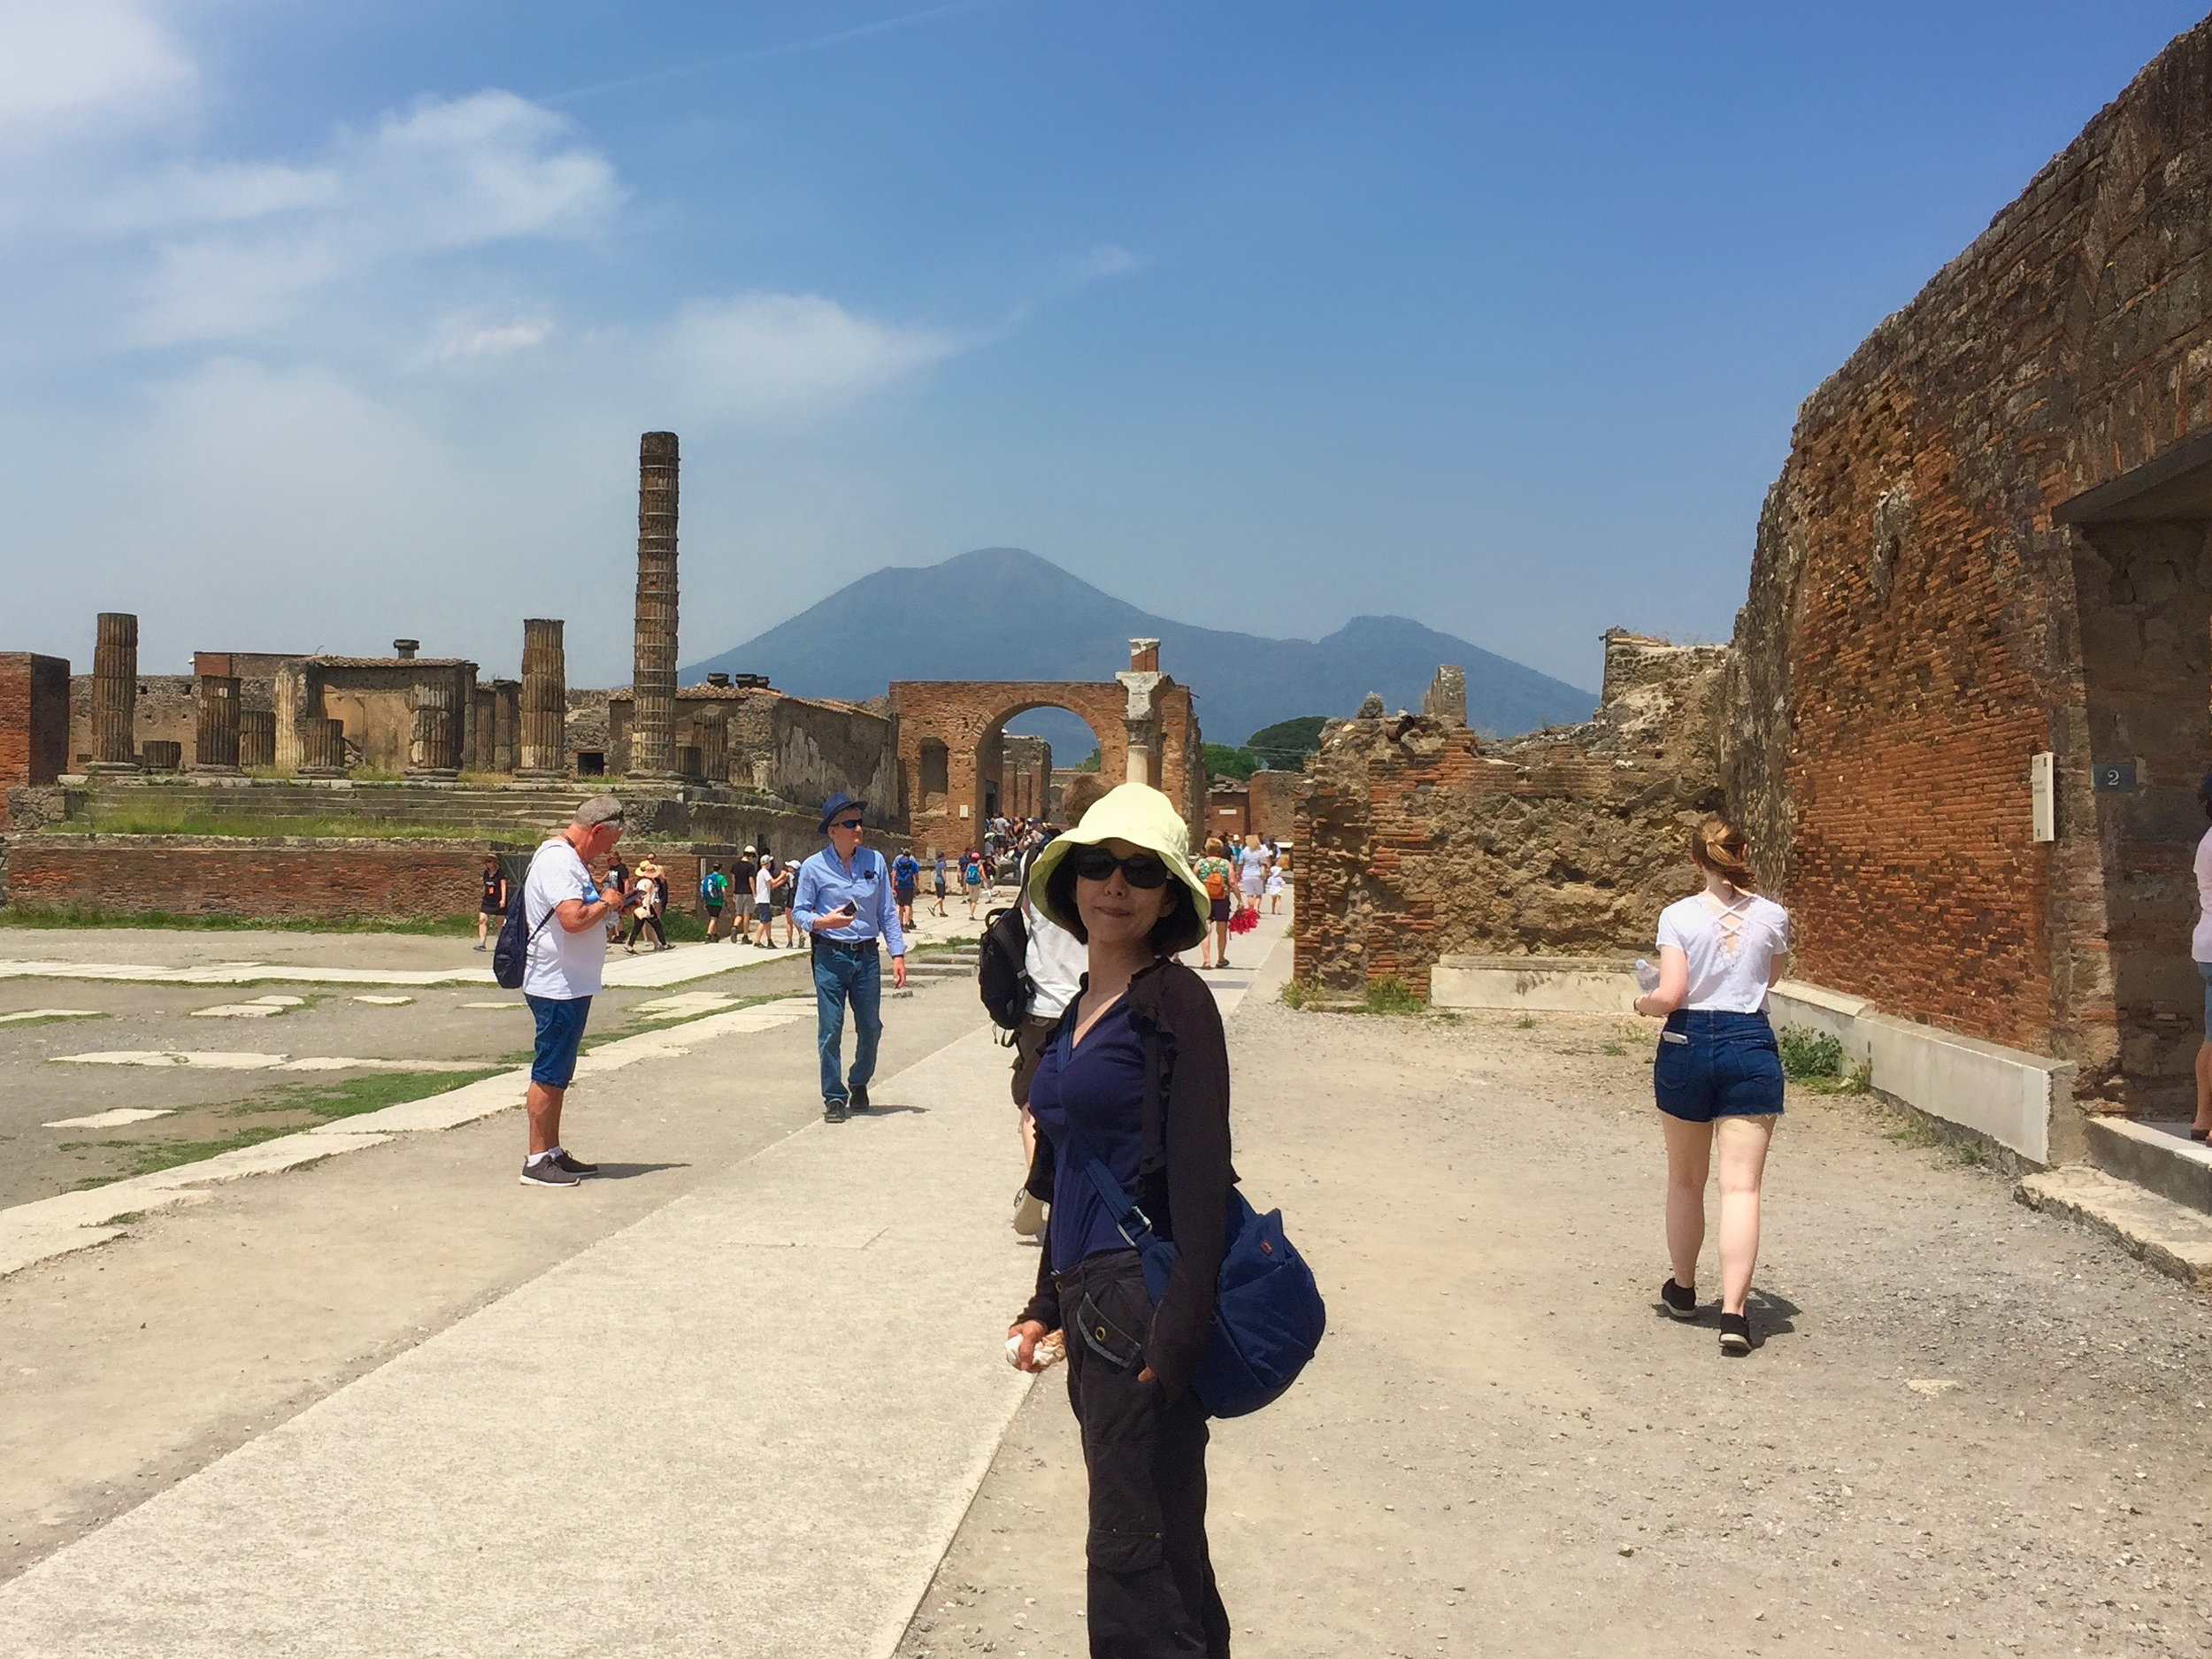 On the way out with Mount Vesuvius in the background. I was surprised how far away it is.